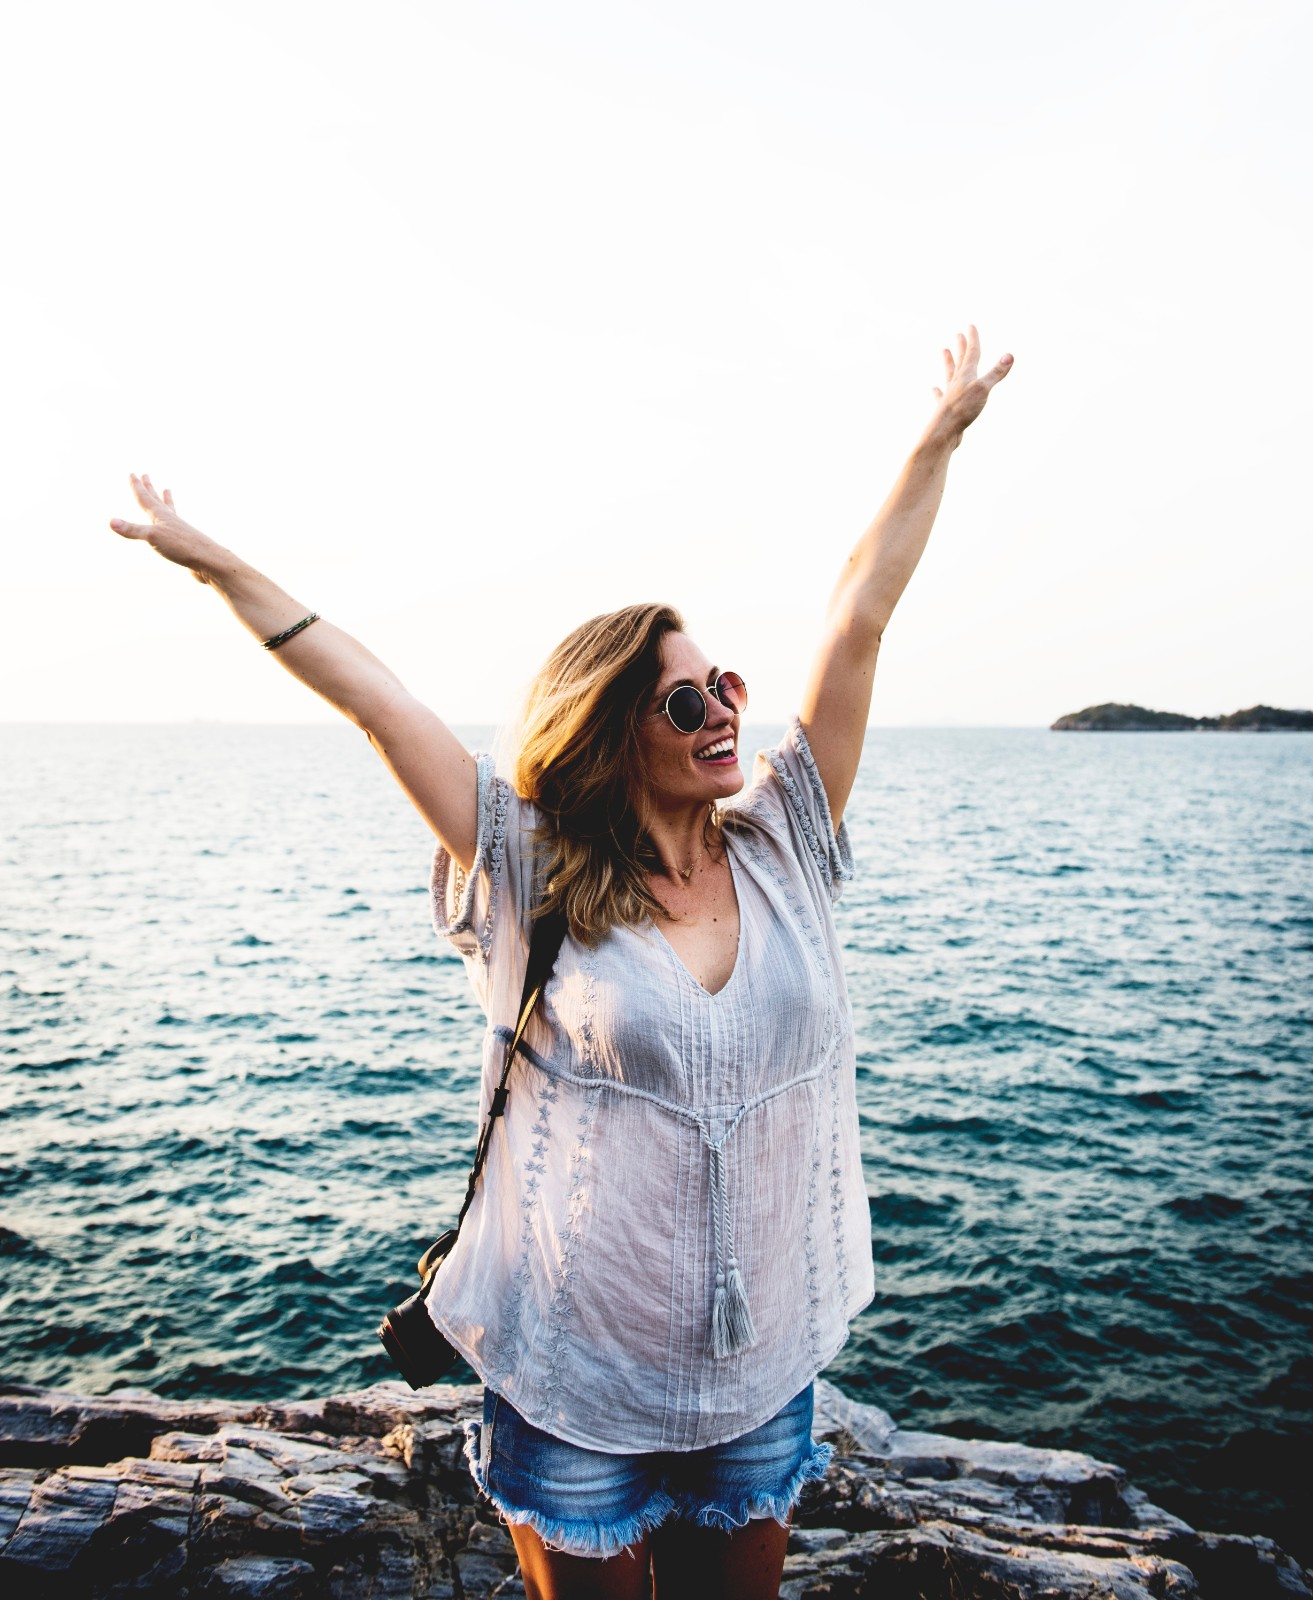 Women in Ocean happy and free from anxiety